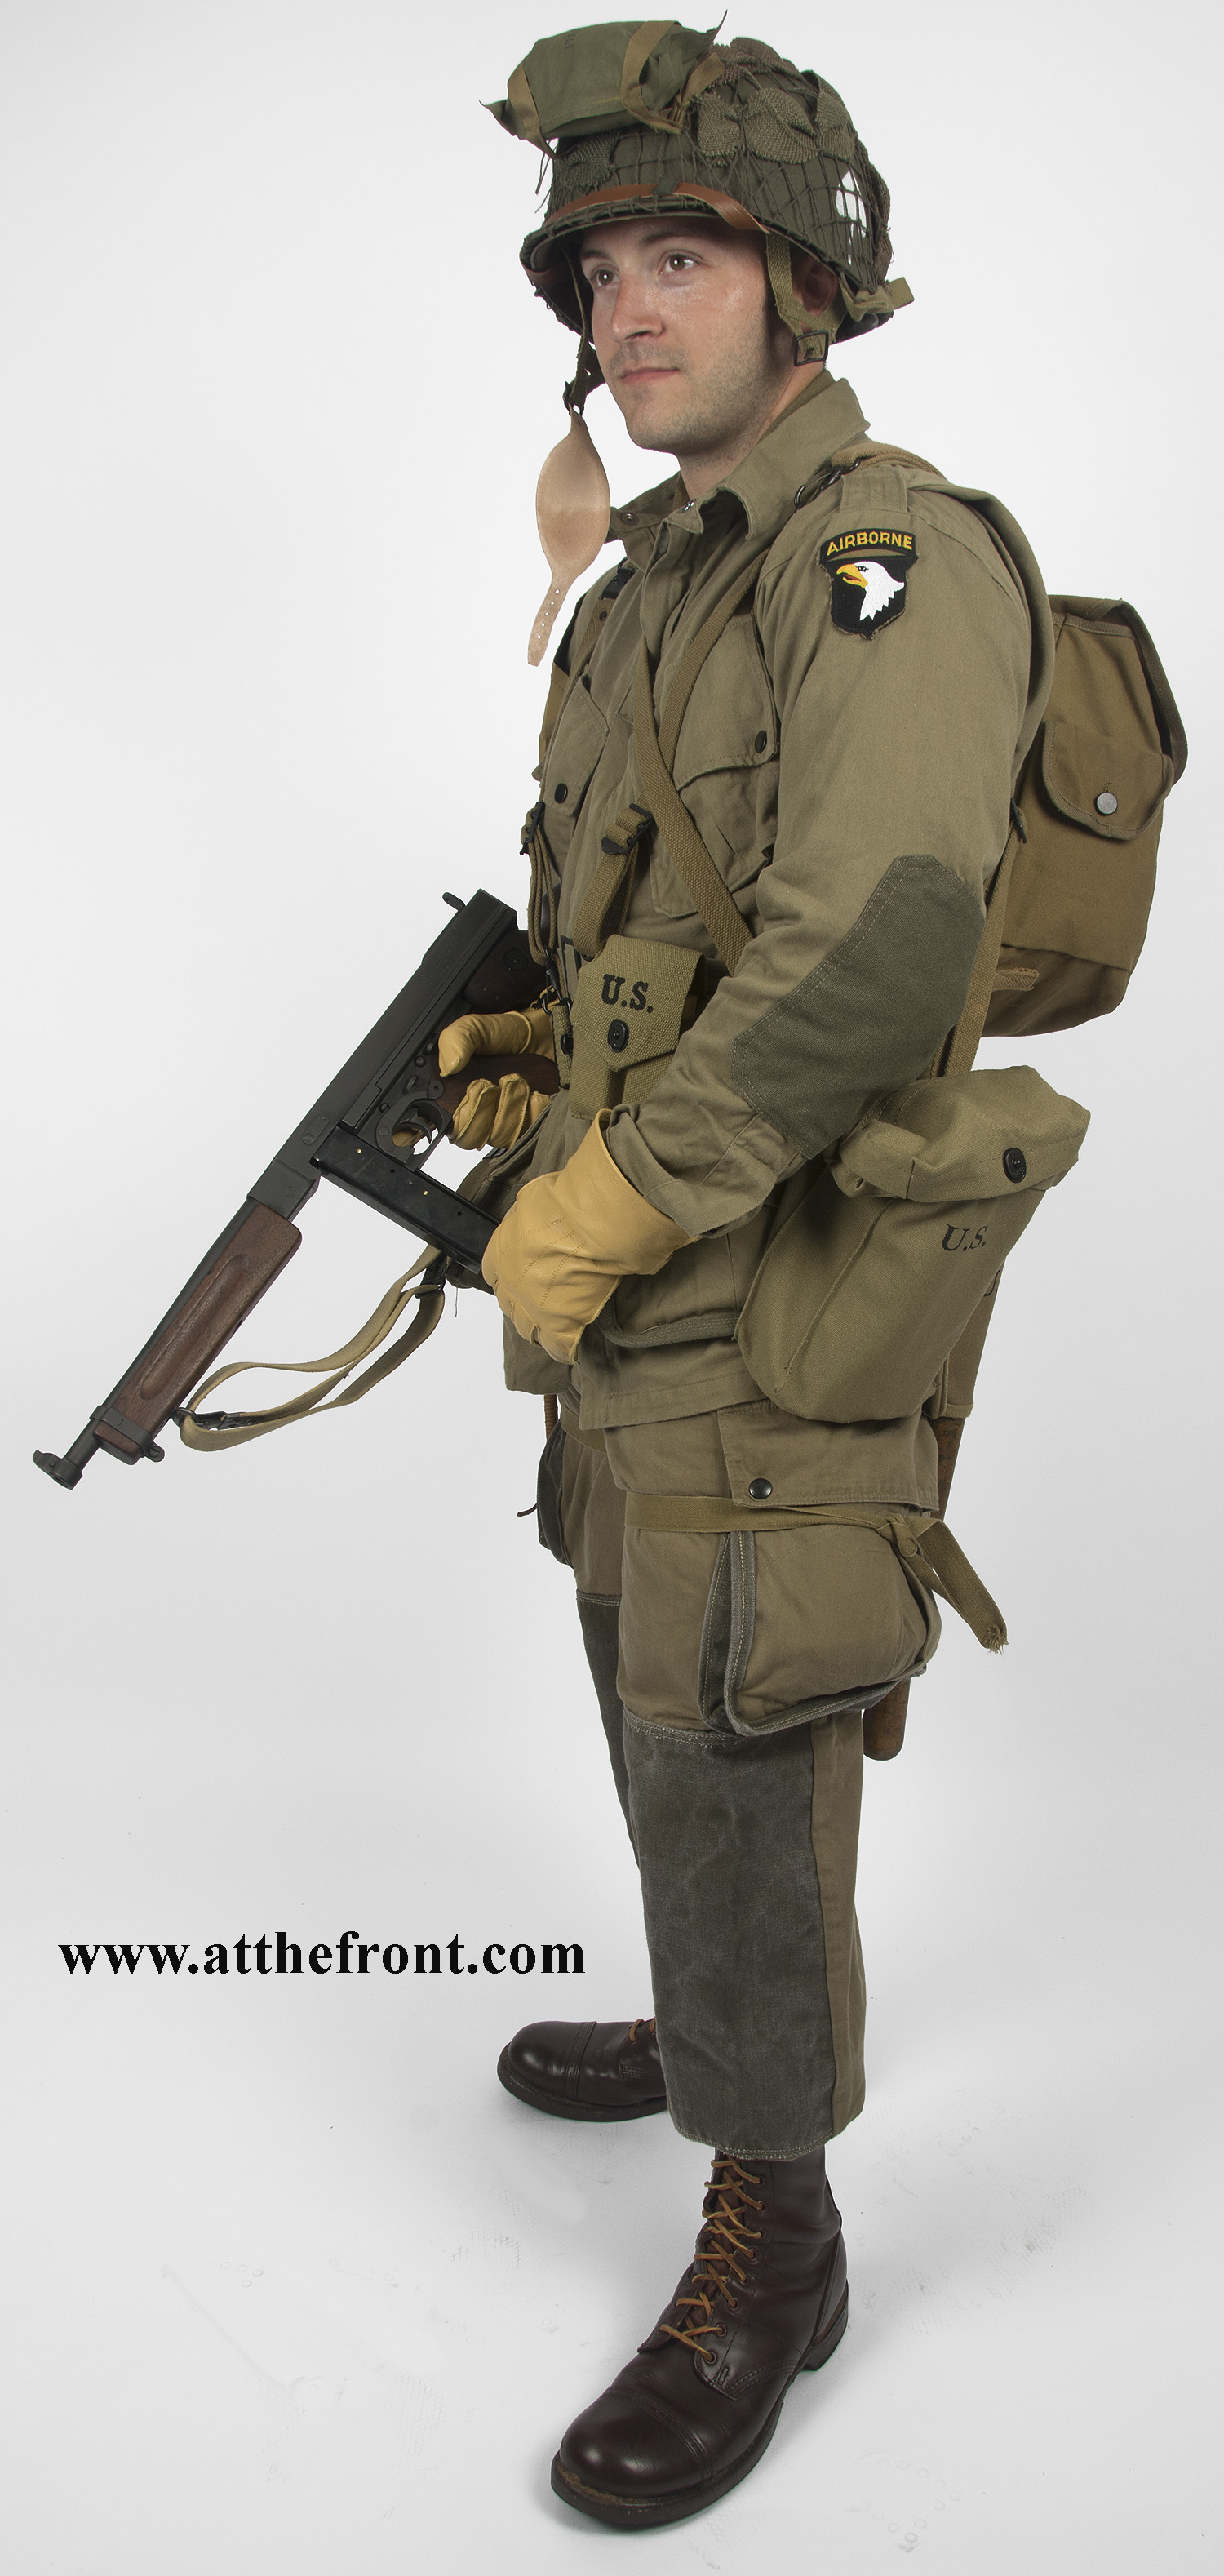 101st Airborne Normandy Uniform Wwii Uniforms Paratrooper Wwii